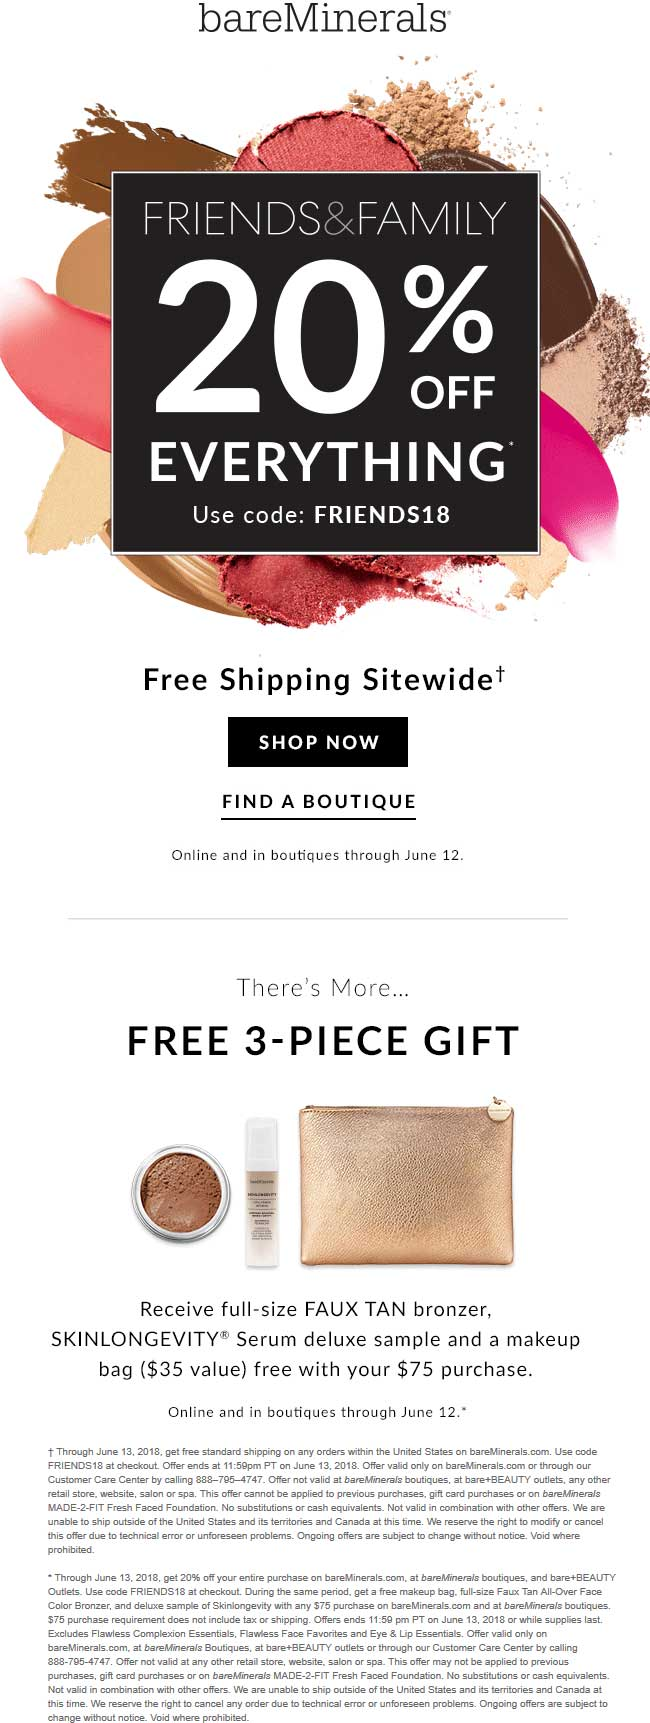 bareMinerals.com Promo Coupon 20% off everything at bareMinerals, or online via promo code FRIENDS18